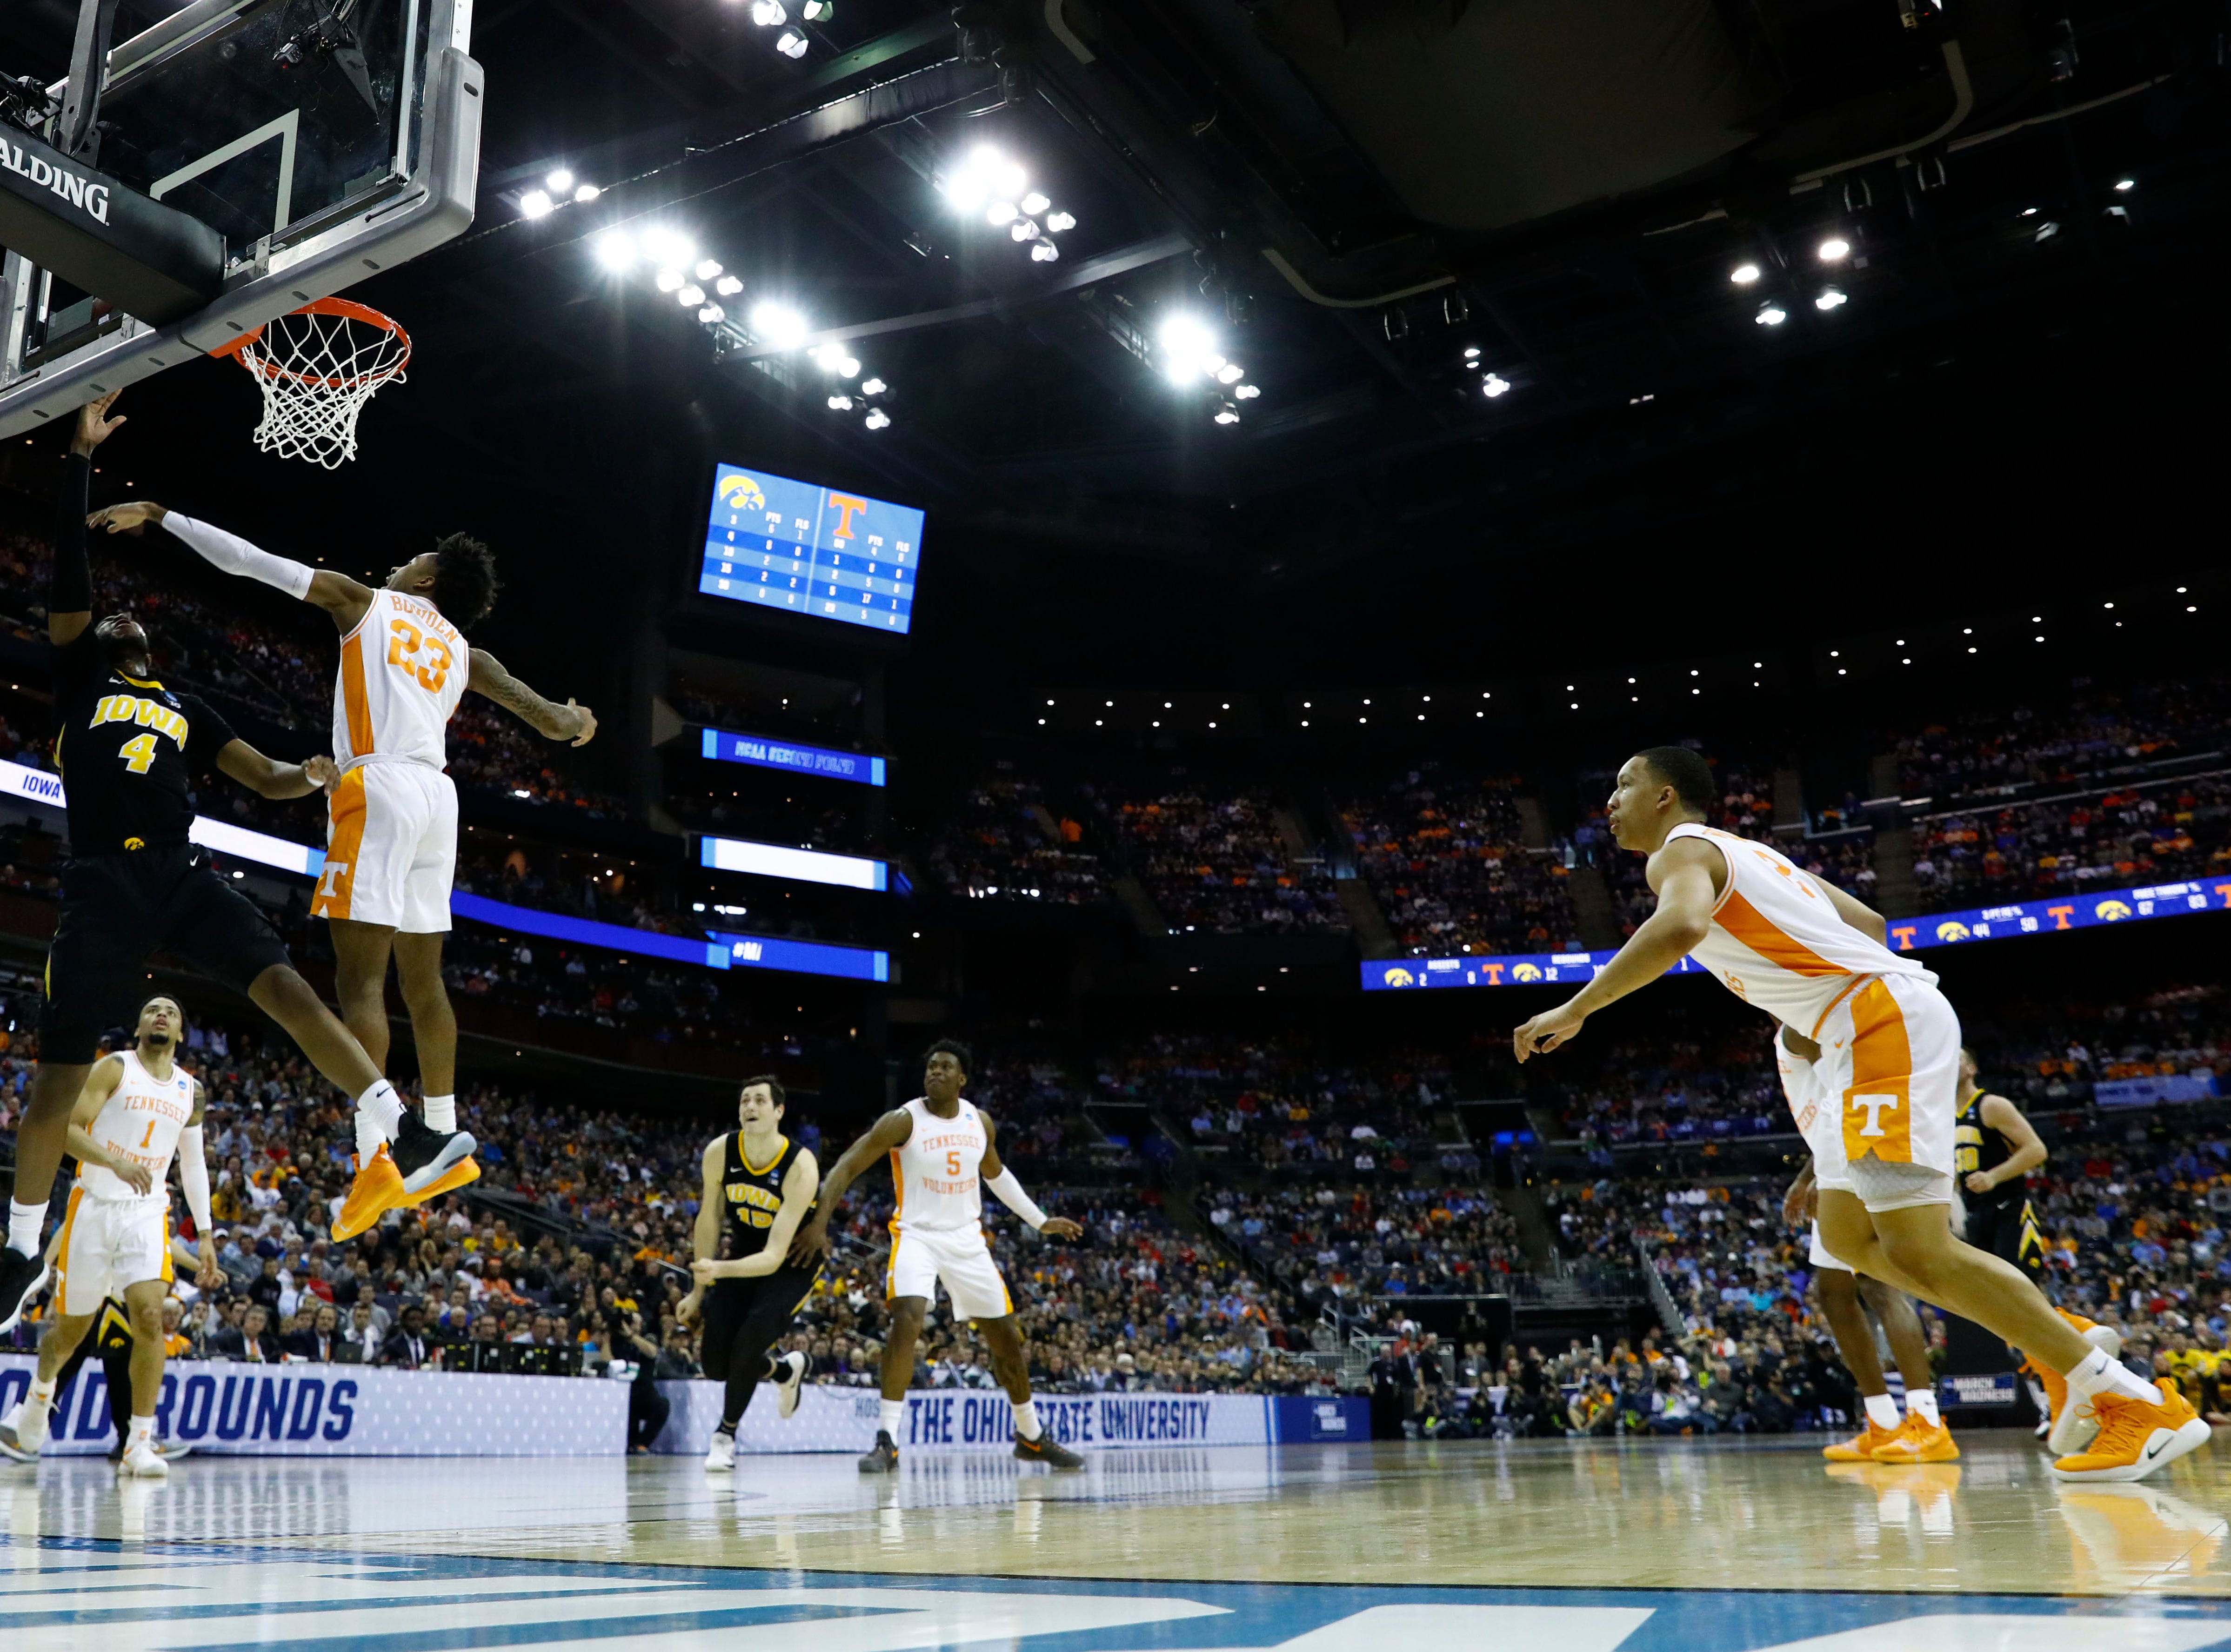 Tennessee Volunteers guard Jordan Bowden (23) blocks a shot from Iowa Hawkeyes guard Isaiah Moss (4) in the first half in the second round of the 2019 NCAA Tournament at Nationwide Arena.